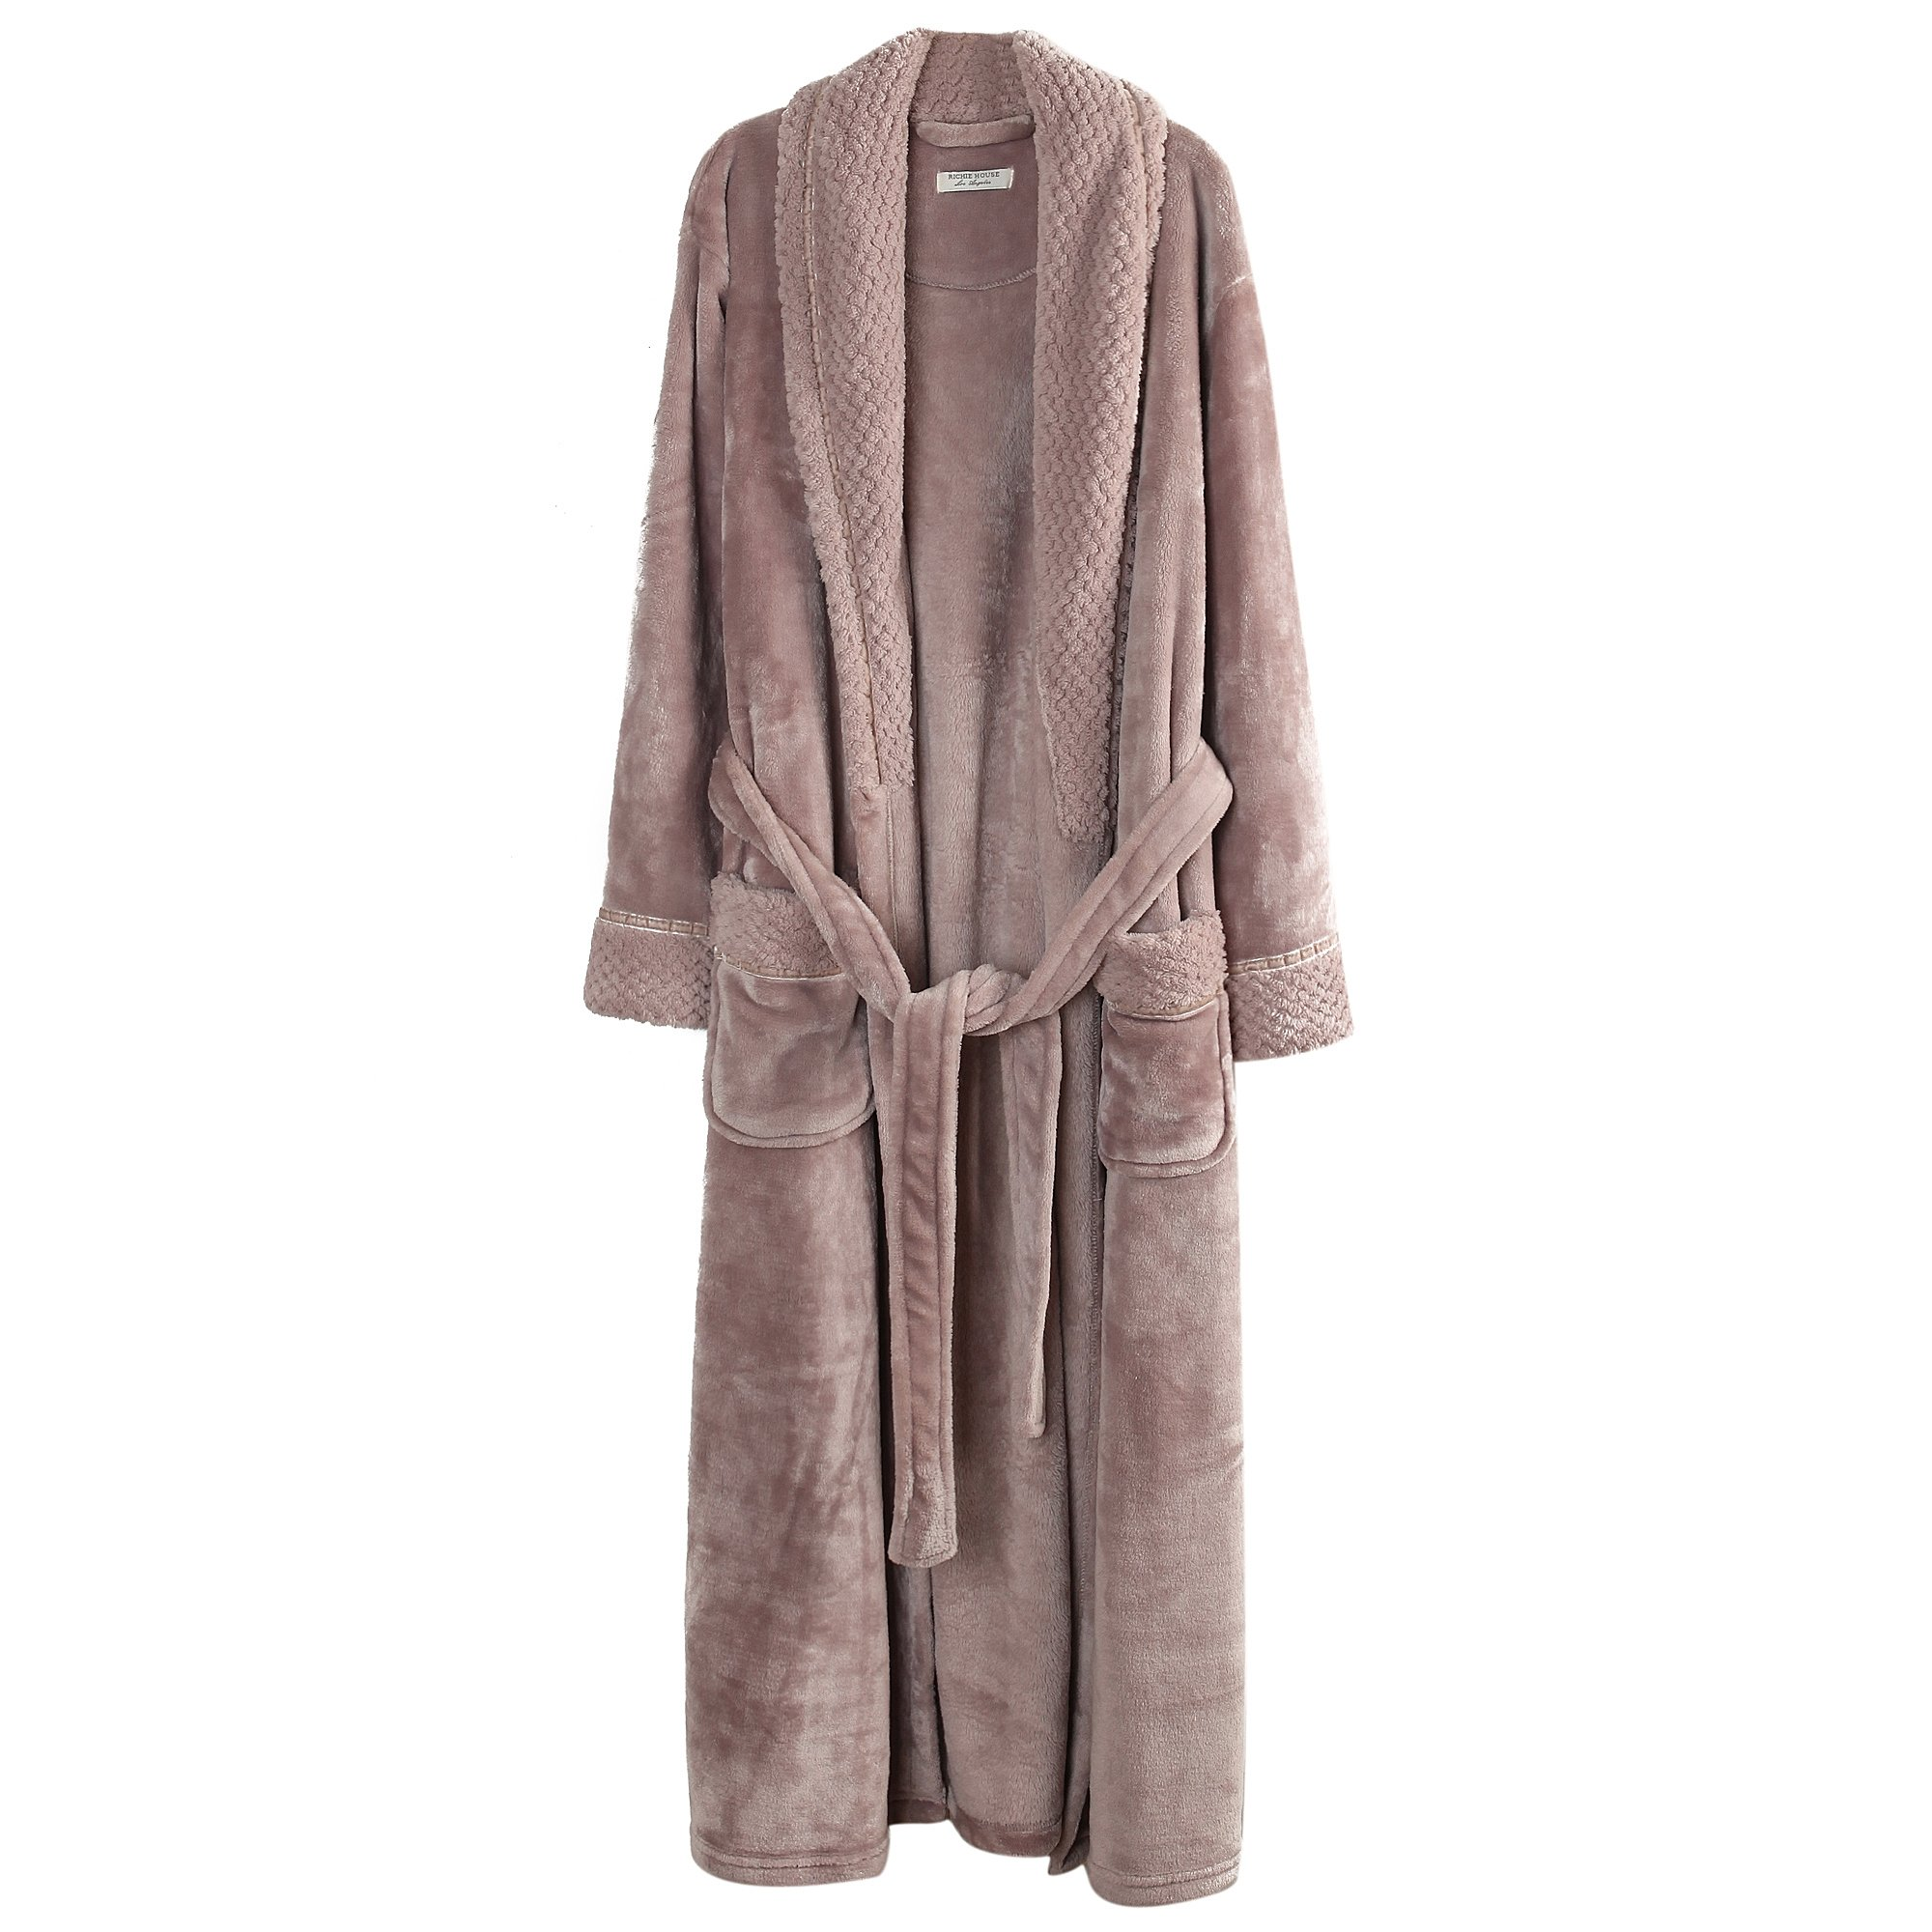 Richie House Women/'s Plush Soft Warm Fleece Bathrobe RH1591-D-L,Nude,Large by Richie House